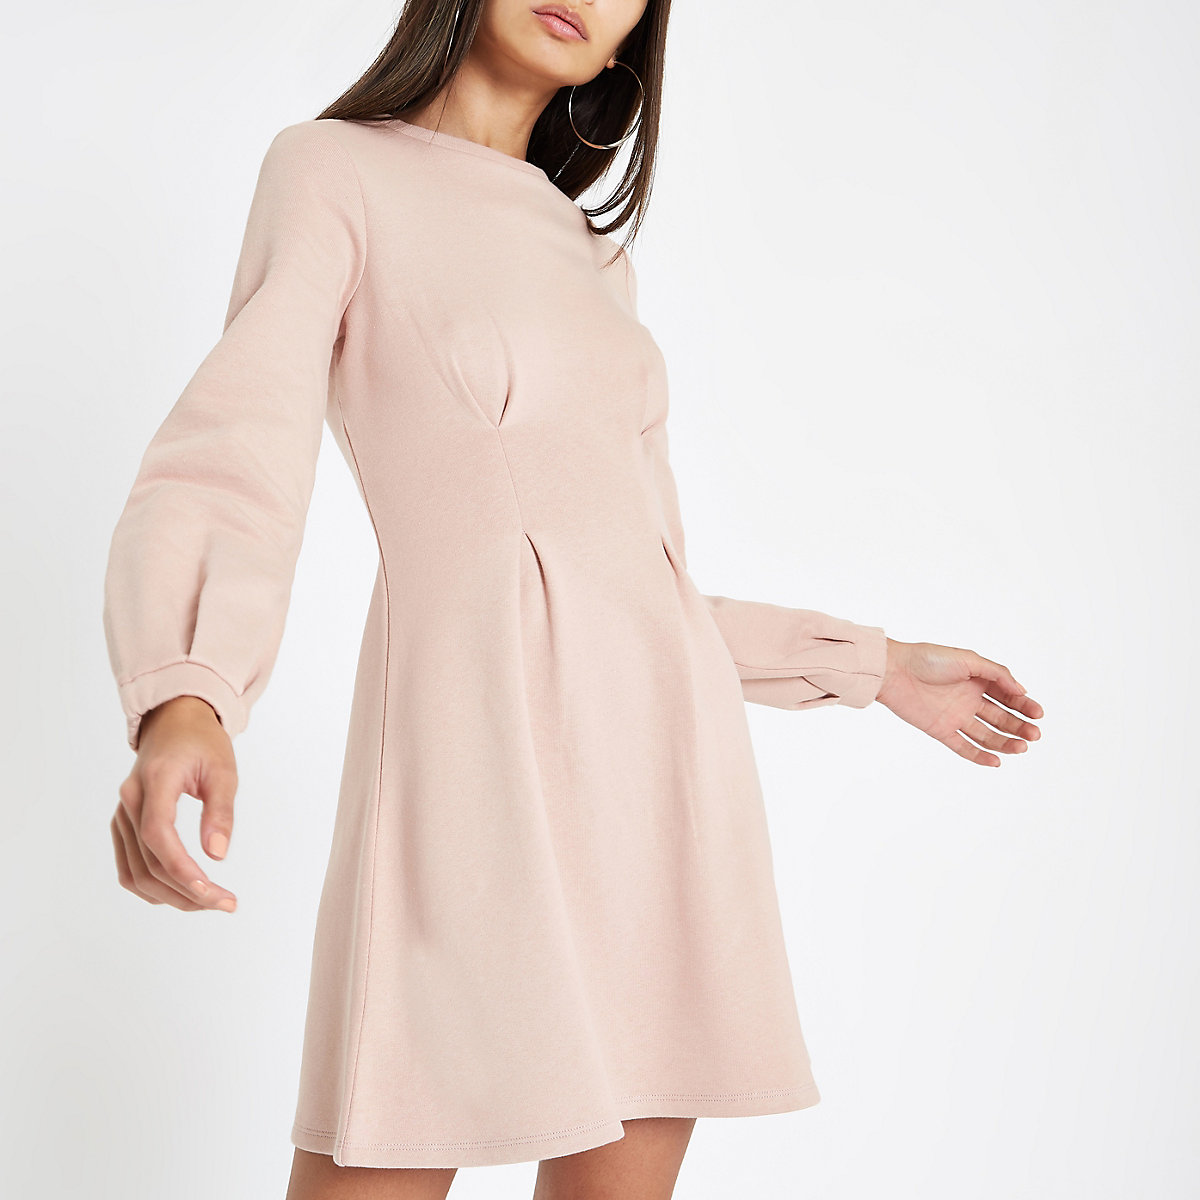 Pink long sleeve sweater dress